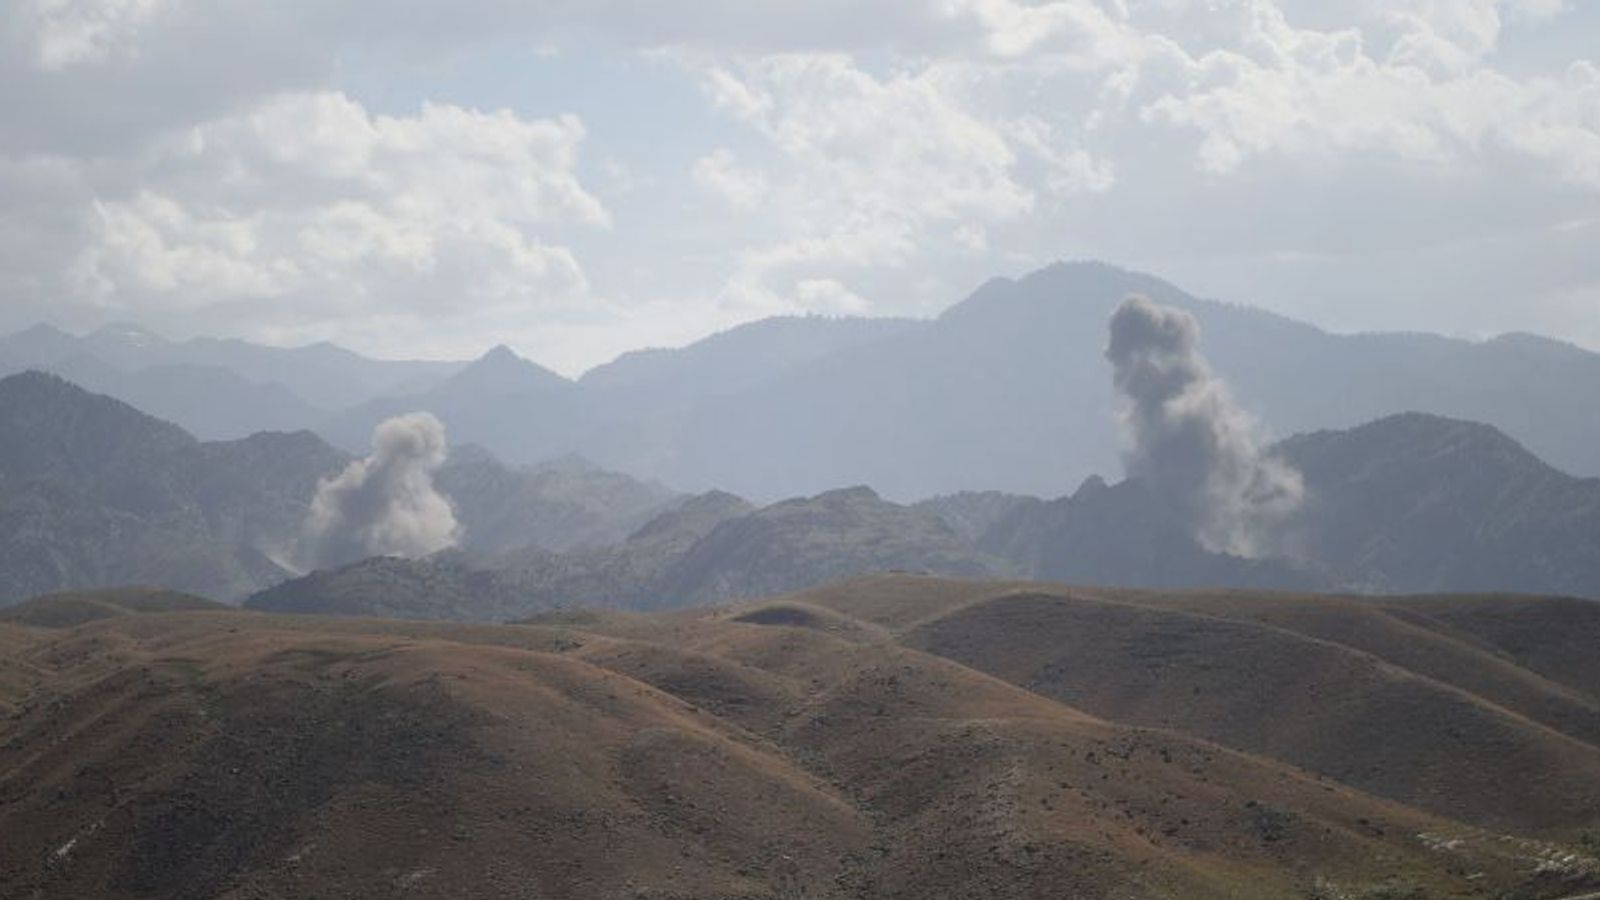 40-plus Taliban killed in retaliatory air raids by Afghan forces amid peace talks